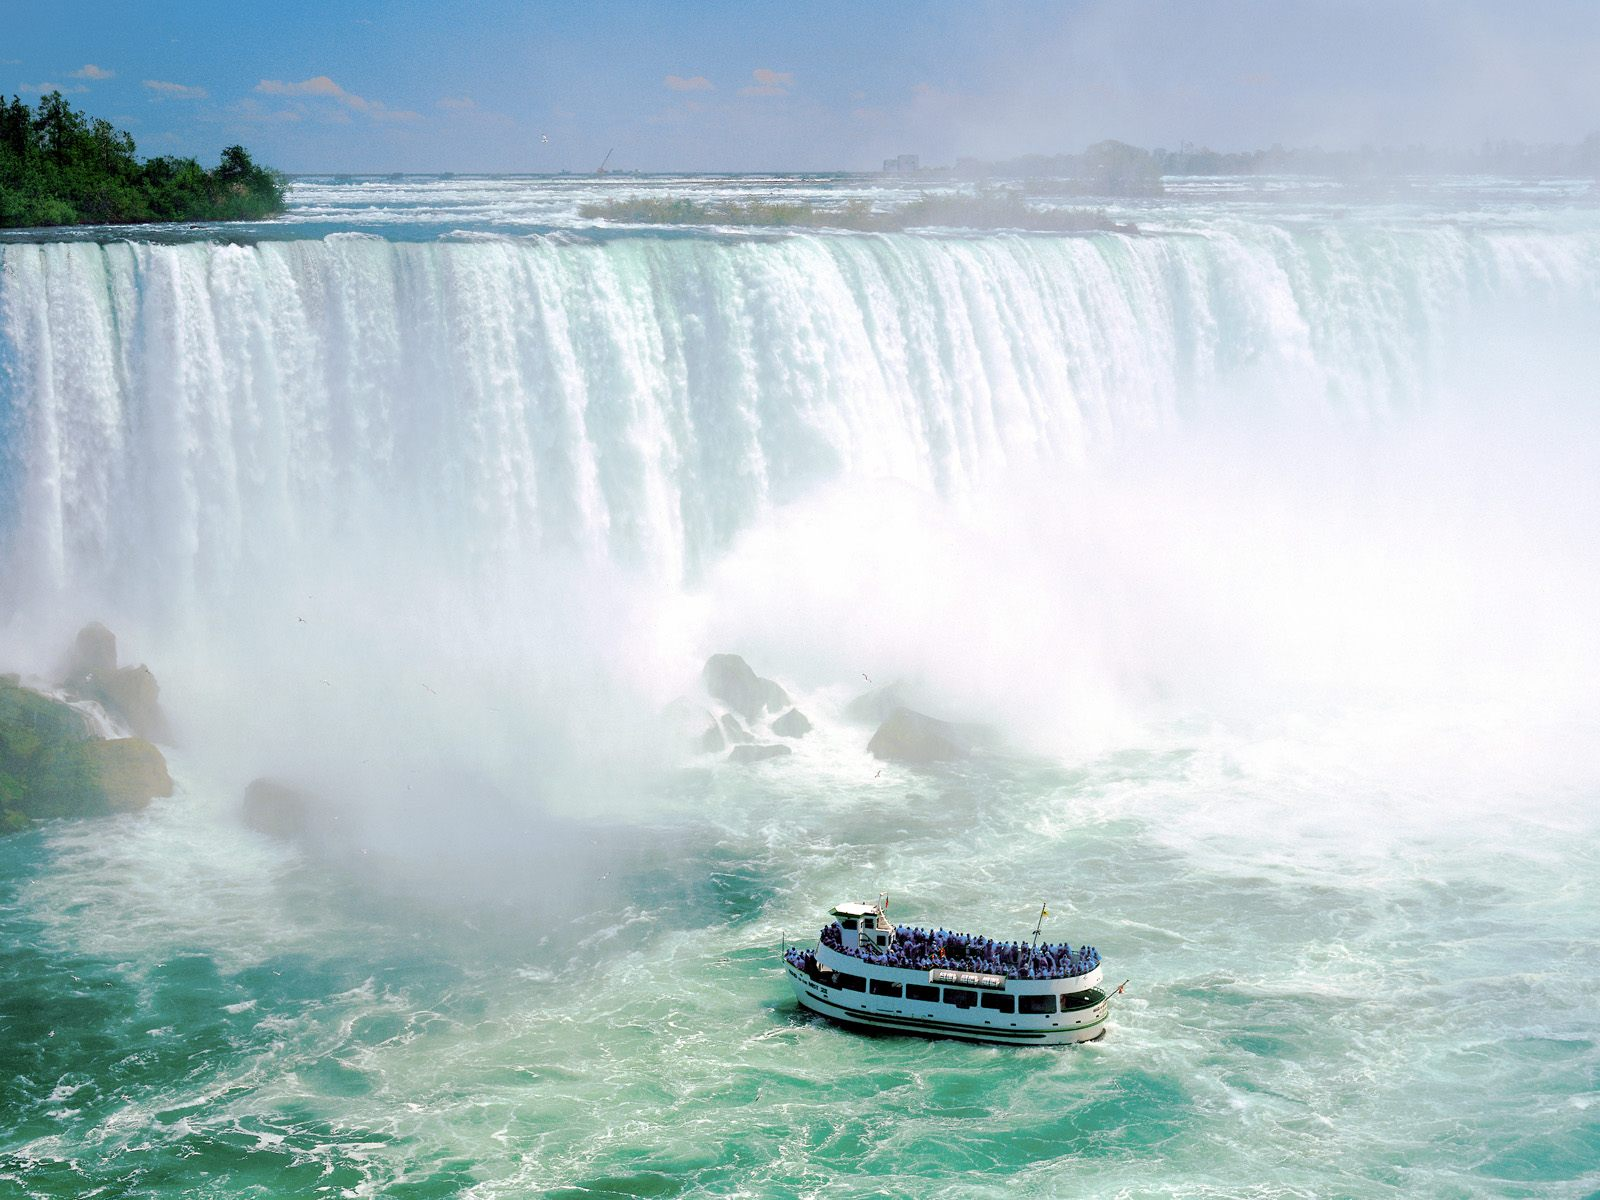 Maid of the Mist VII, Niagara Falls, Ontario, Canada